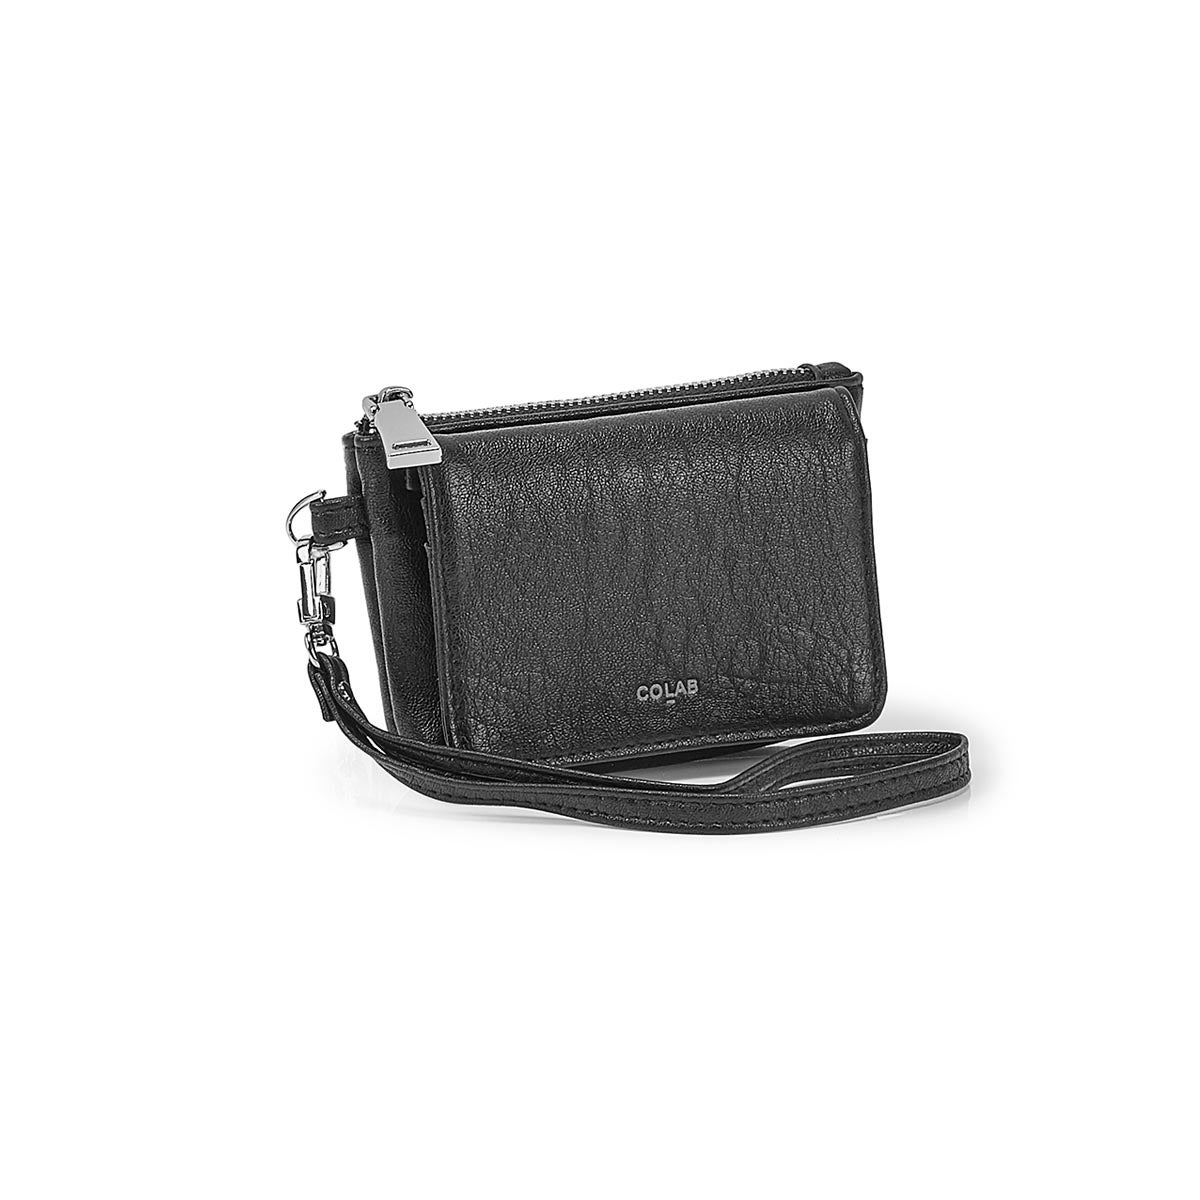 Lds blk detachable strap wristlet